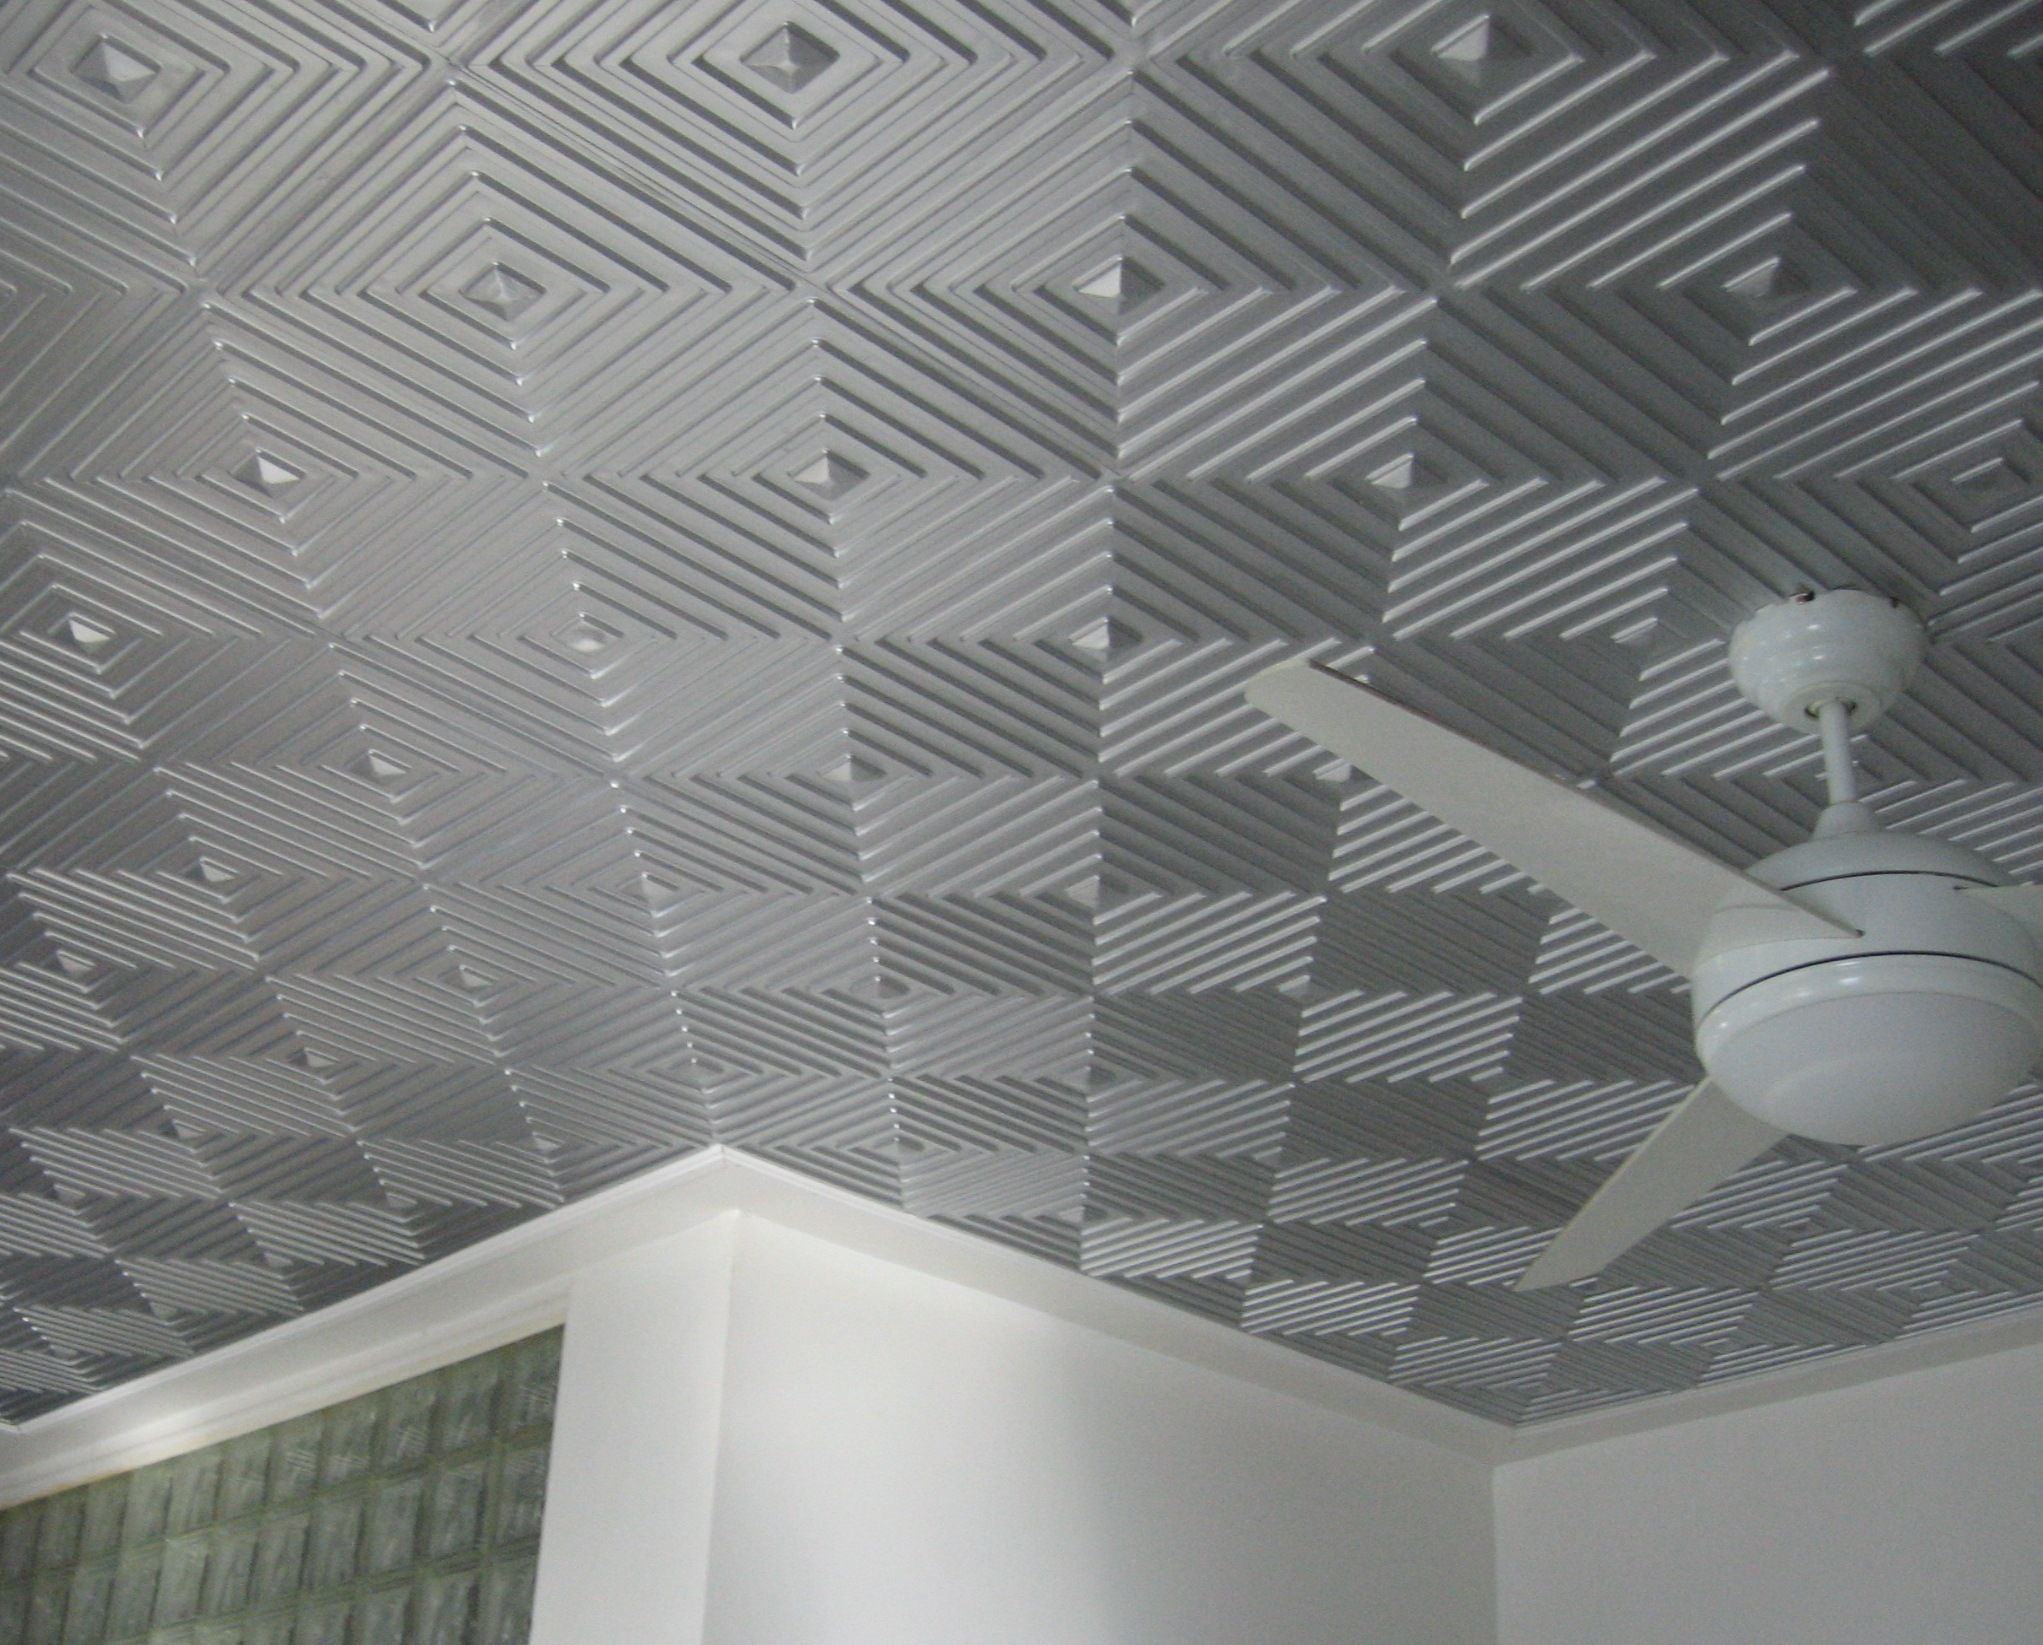 Awesome gray silver ceiling tile idea with cool geometric stripes ceiling designhave a good looking ceiling with elegant faux tin ceiling tiles ideas doublecrazyfo Images